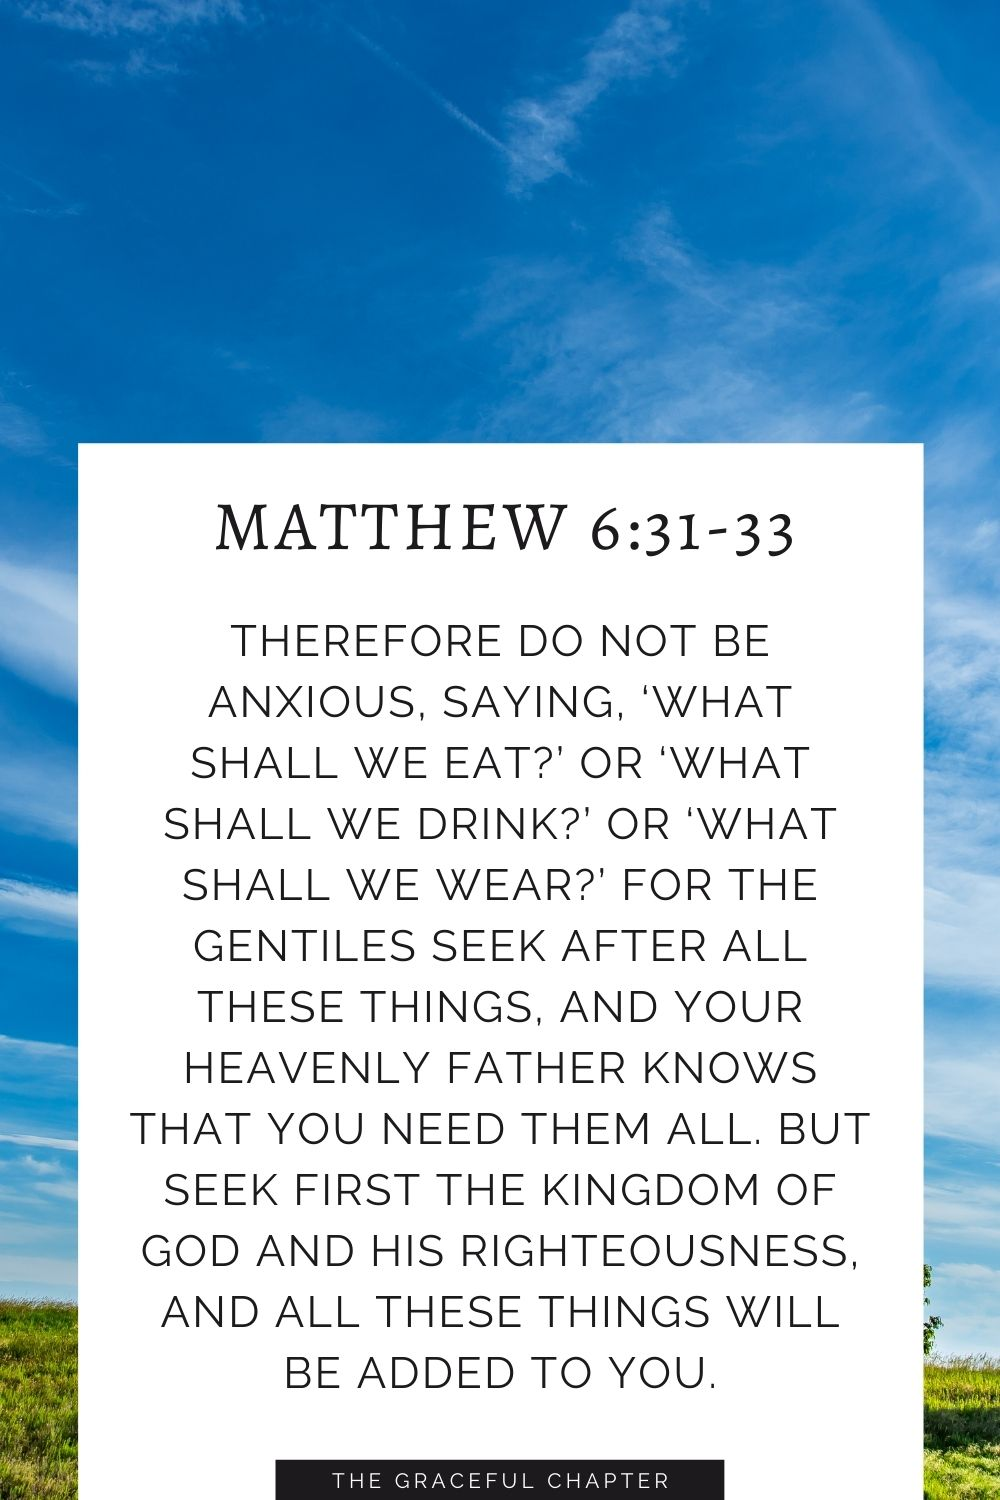 Therefore do not be anxious, saying, 'What shall we eat?' or 'What shall we drink?' or 'What shall we wear?'For the Gentiles seek after all these things, and your heavenly Father knows that you need them all. But seek first the kingdom of God and his righteousness, and all these things will be added to you. Matthew 6:31-33